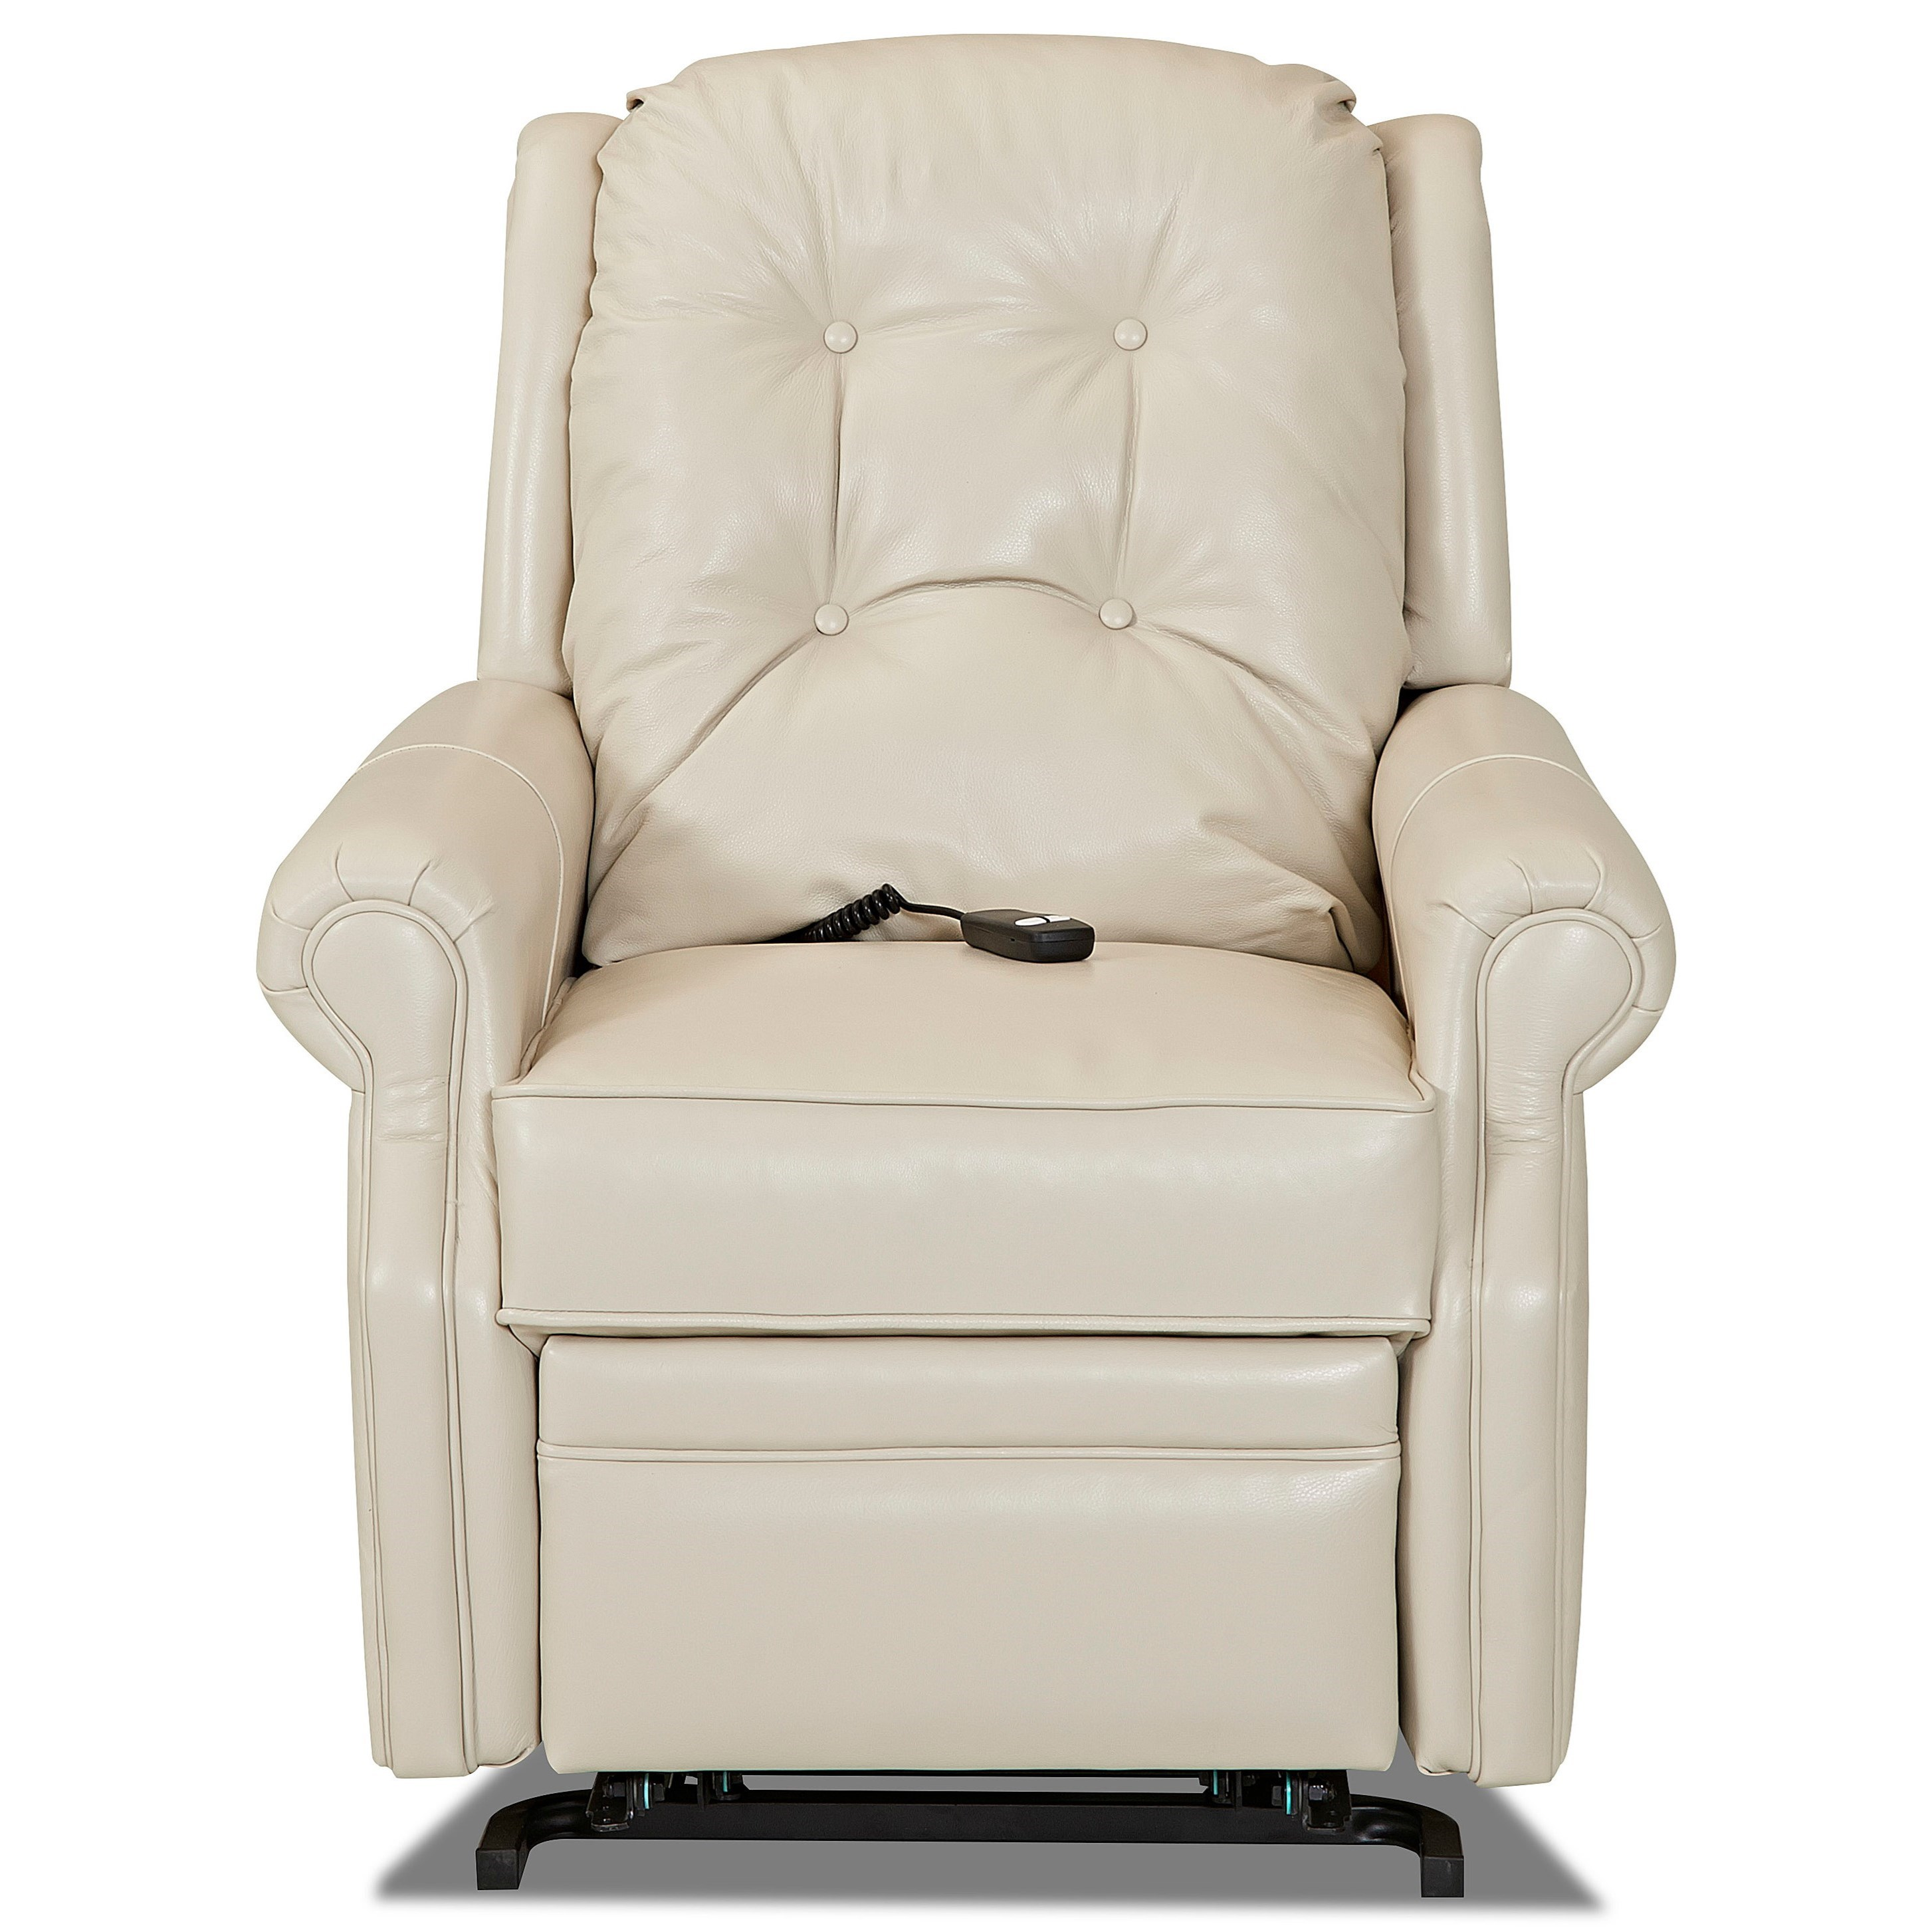 Sand Key Power Recline Lift Chair by Klaussner at Northeast Factory Direct